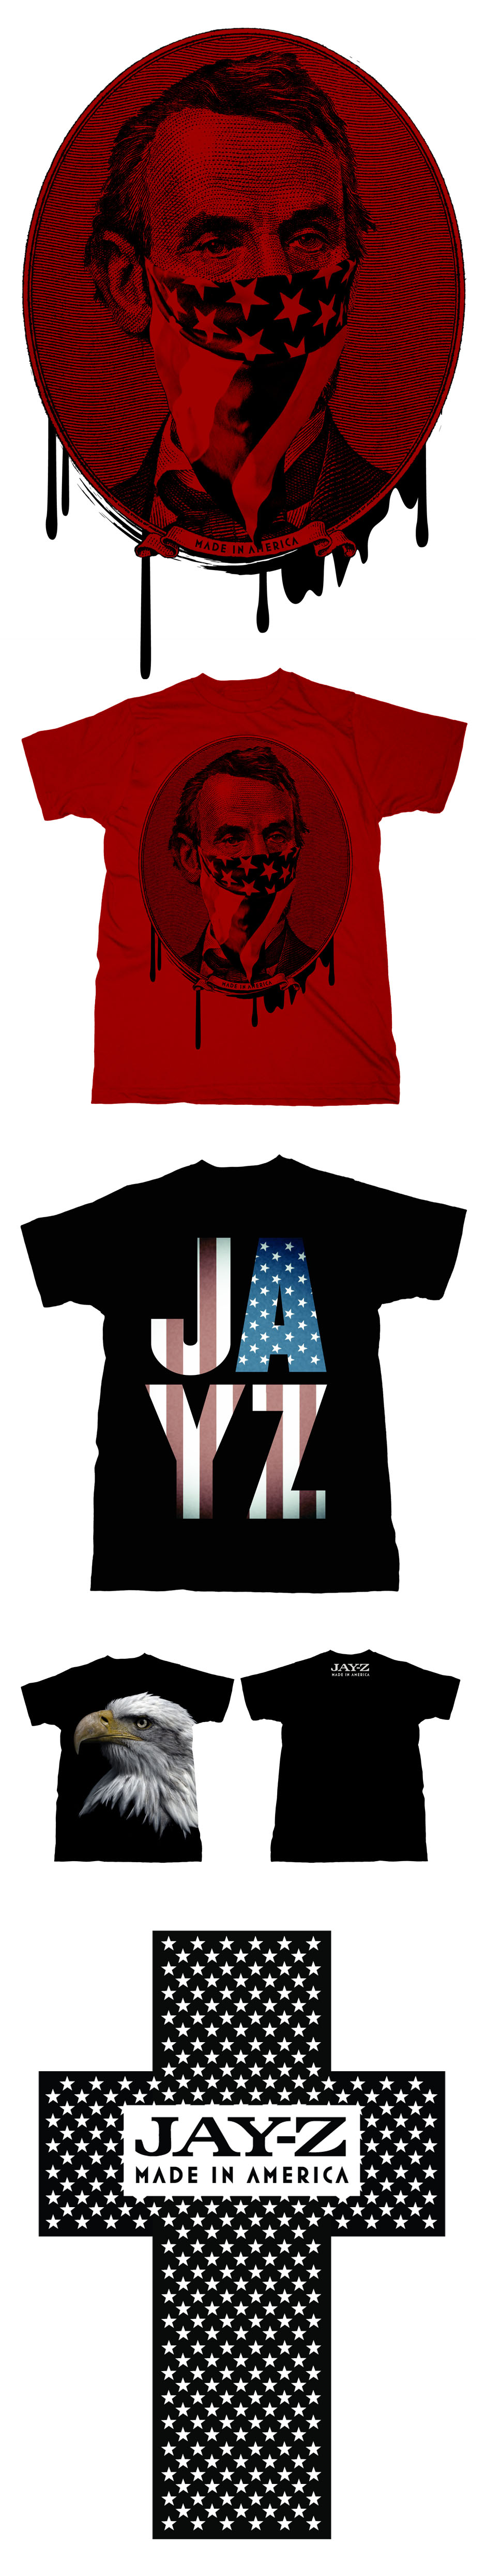 JAY-Z merch for Made in America festival | cfeldmann.com Jay Z